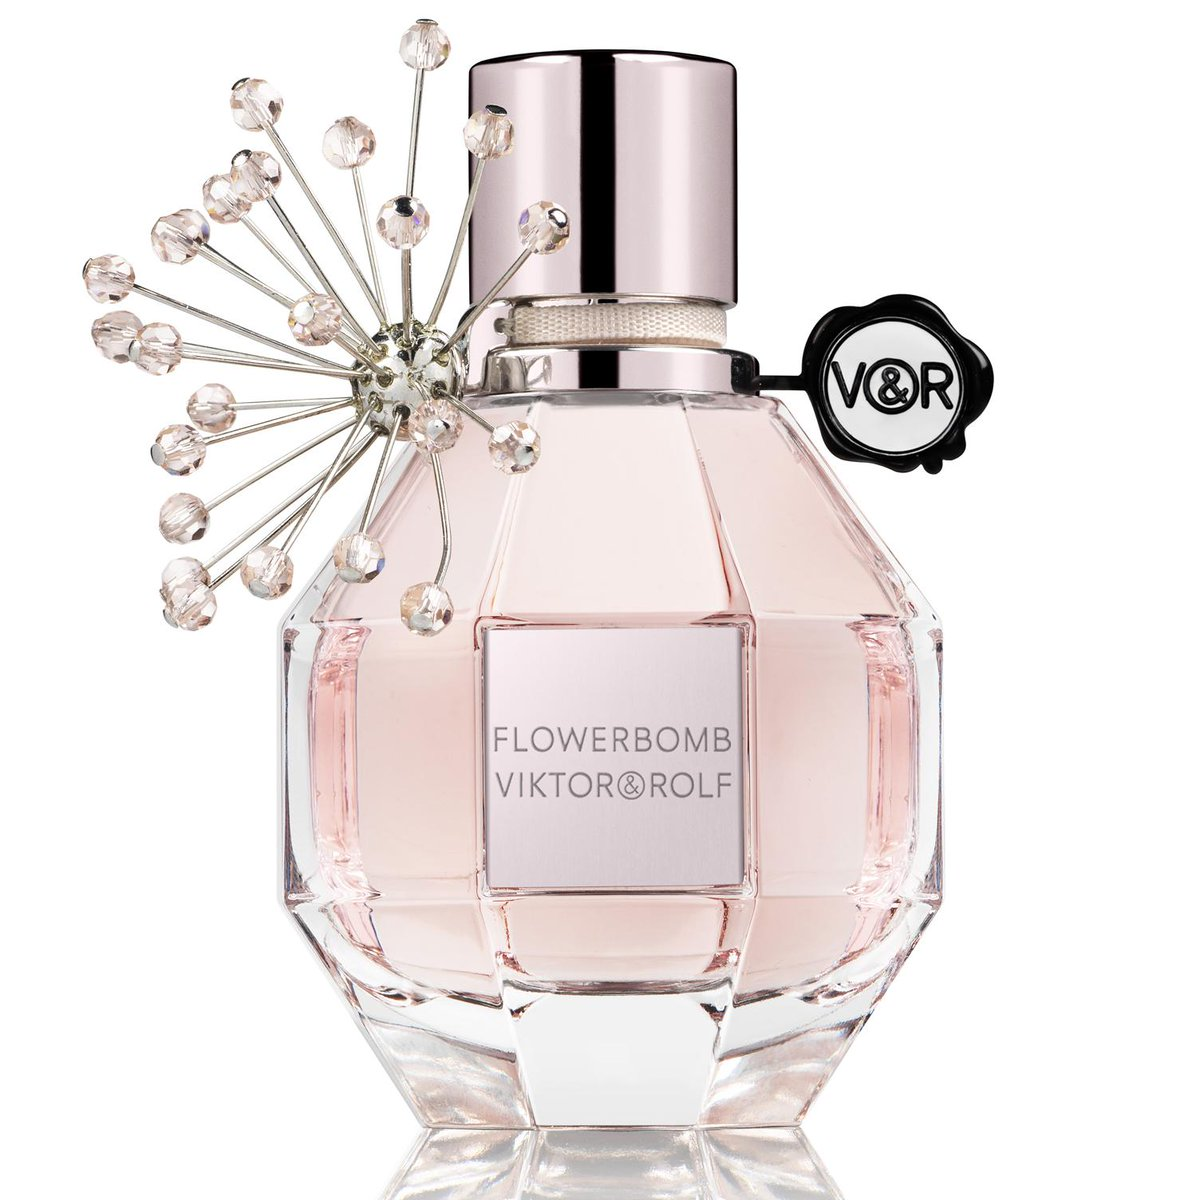 """""""We feel like she's our daughter"""": @Viktor_and_Rolf on 10 years of Flowerbomb #Flowerbomb10 http://t.co/TgfJ2ExcDE http://t.co/smQ4hTmcUz"""